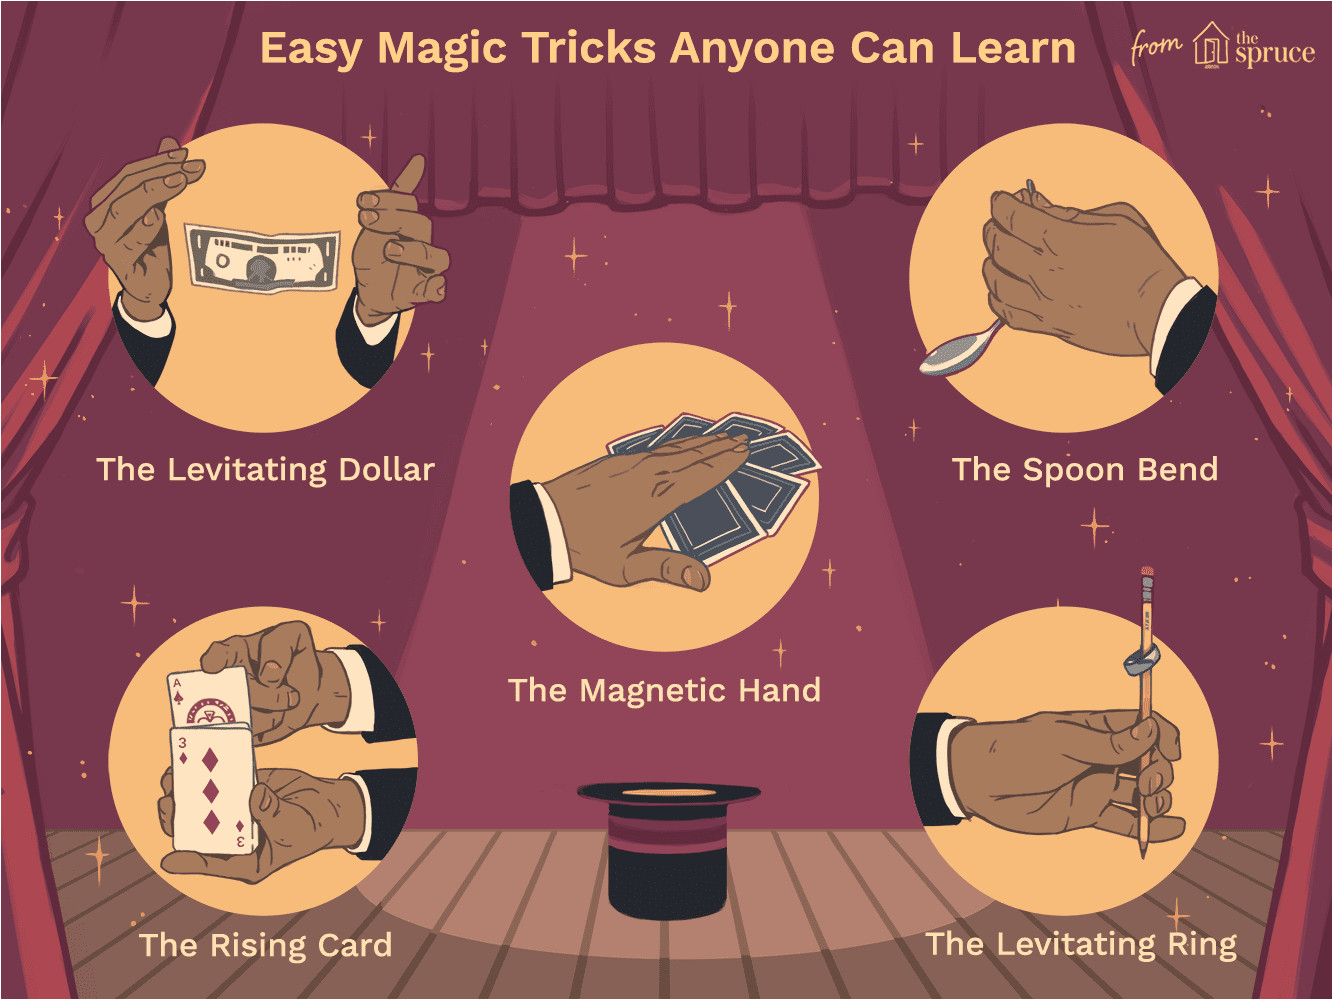 learn and perform easy magic tricks add 4121915 final 055a28bc695642e0a234b6c923f88261 png